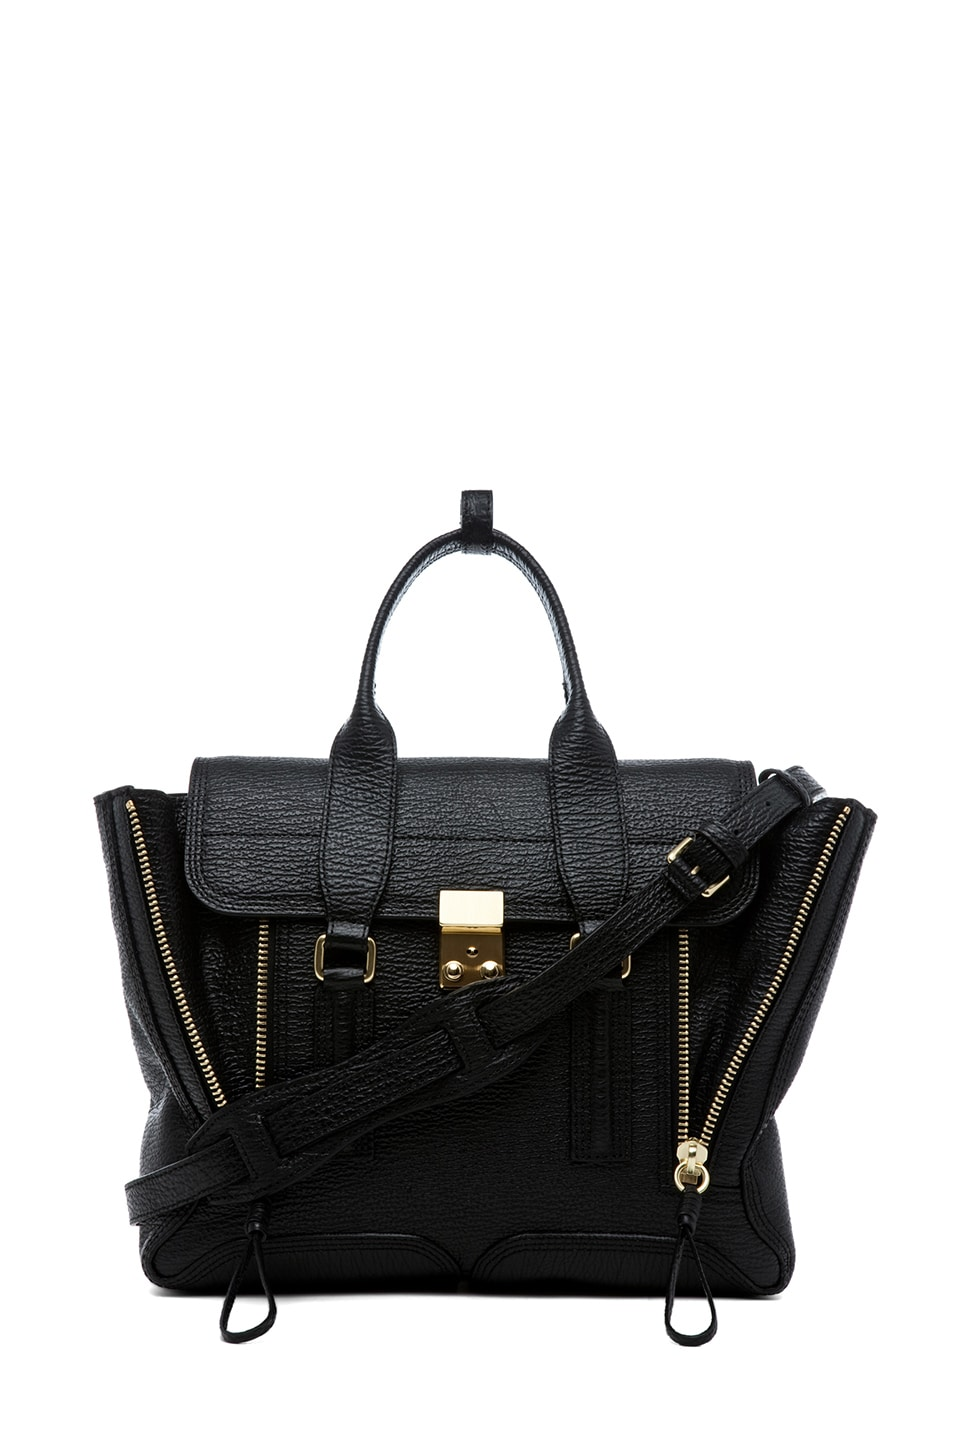 Image 1 of 3.1 phillip lim Medium Pashli Trapeze in Black